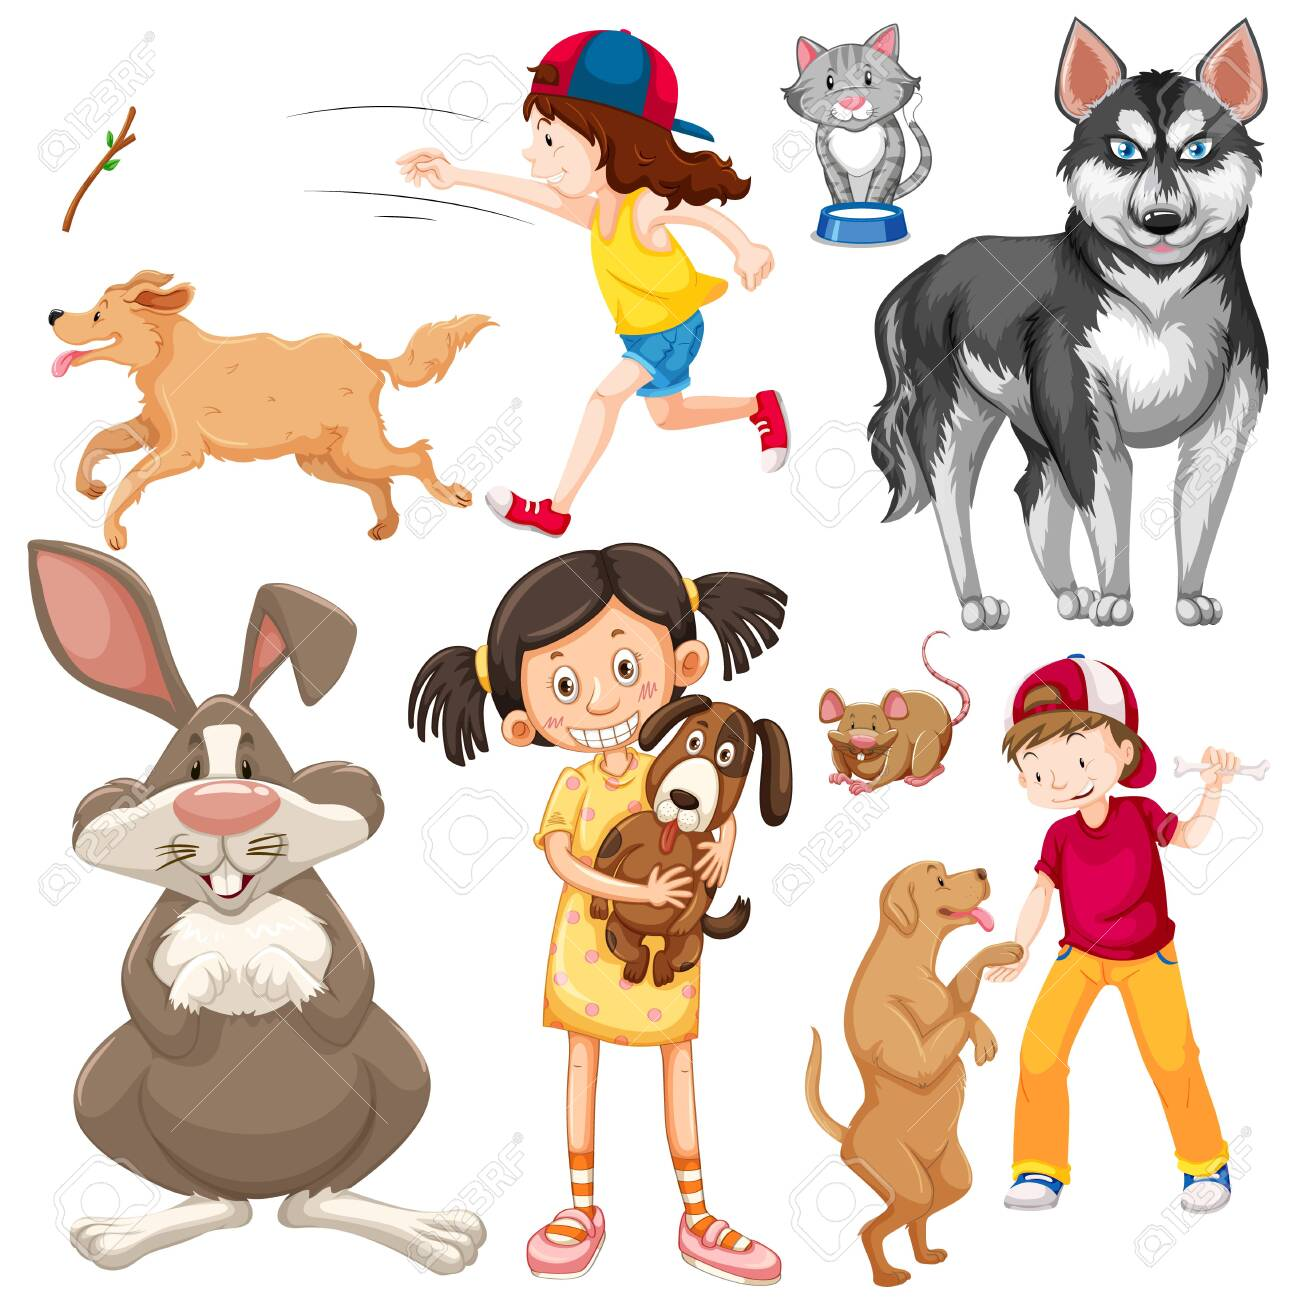 Children with animals on isolated background illustration - 129979027